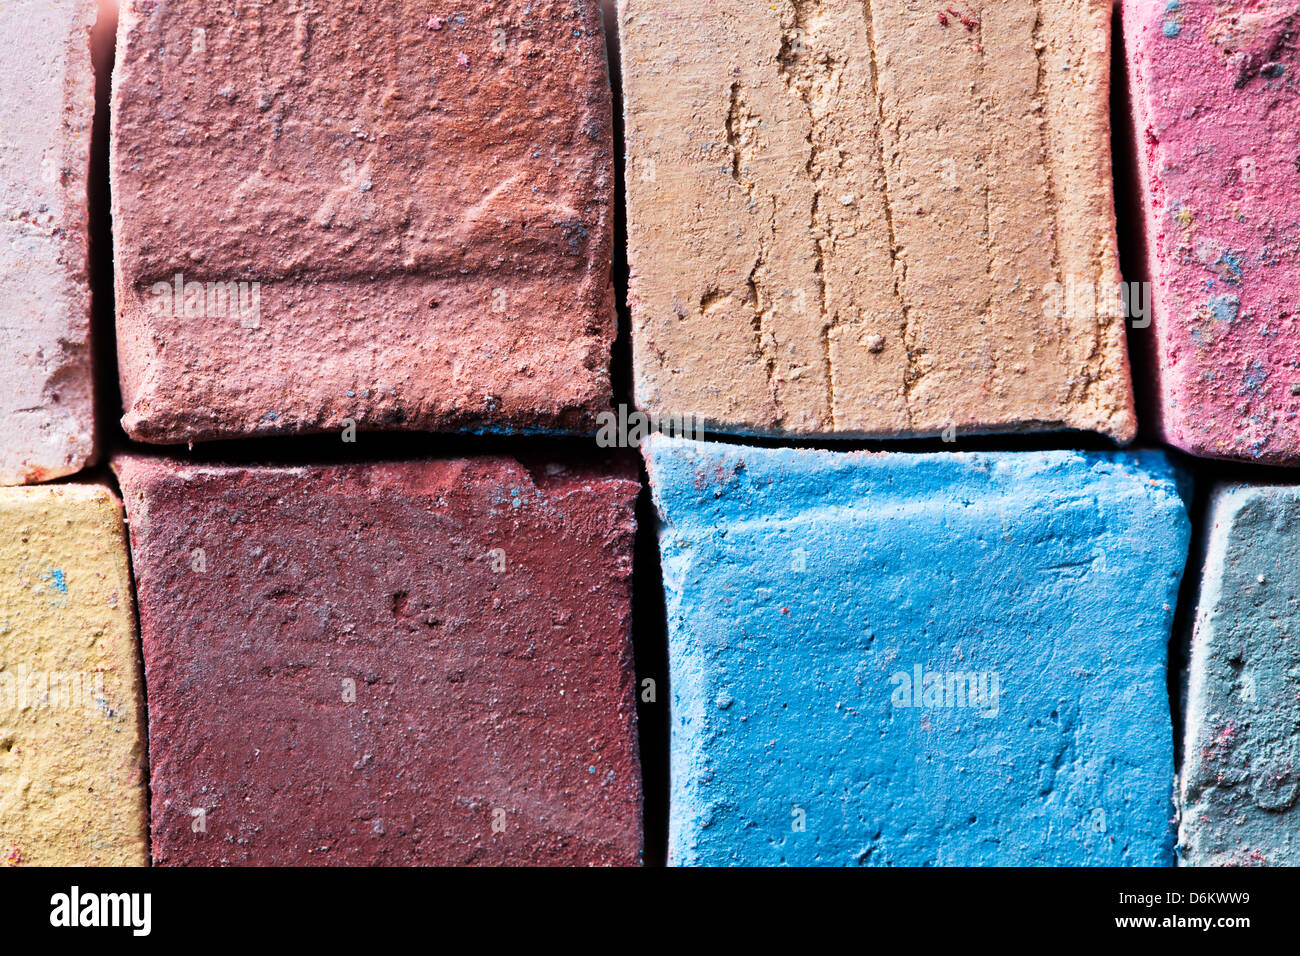 chalks pieces colorful full frame closeup - Stock Image